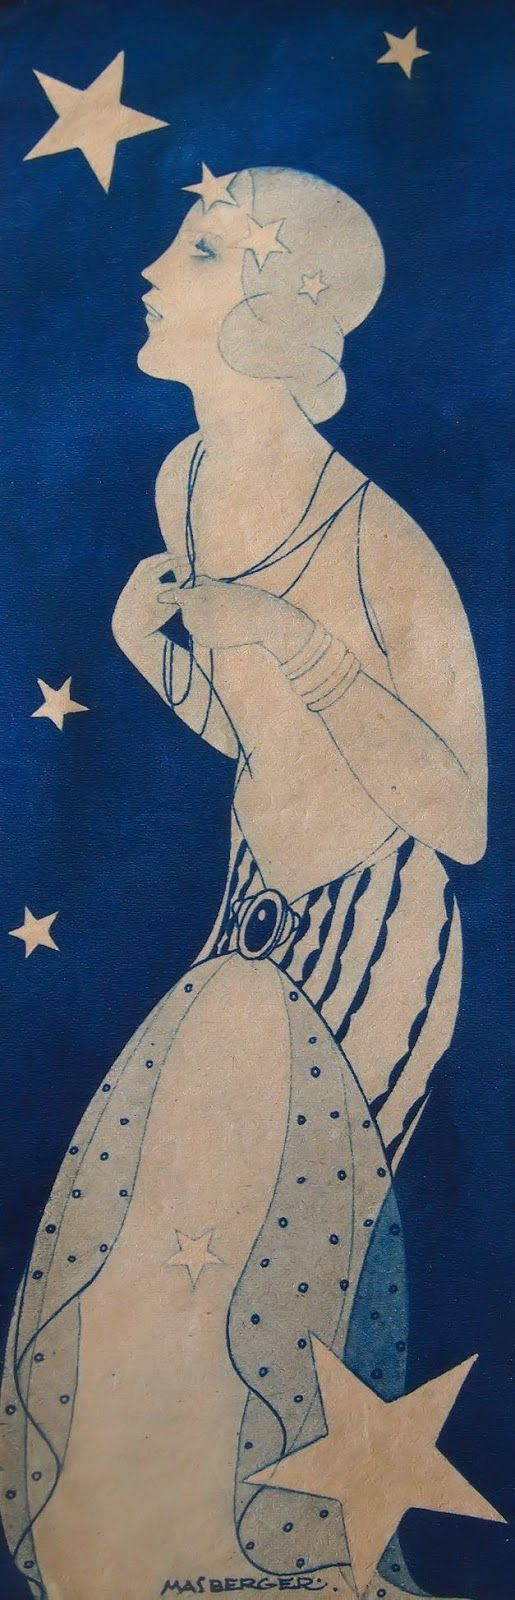 Female-centric artwork  Vintage et cancrelats: Carlos Masberger : Lune, 1935  #tataharper #seasonoflove